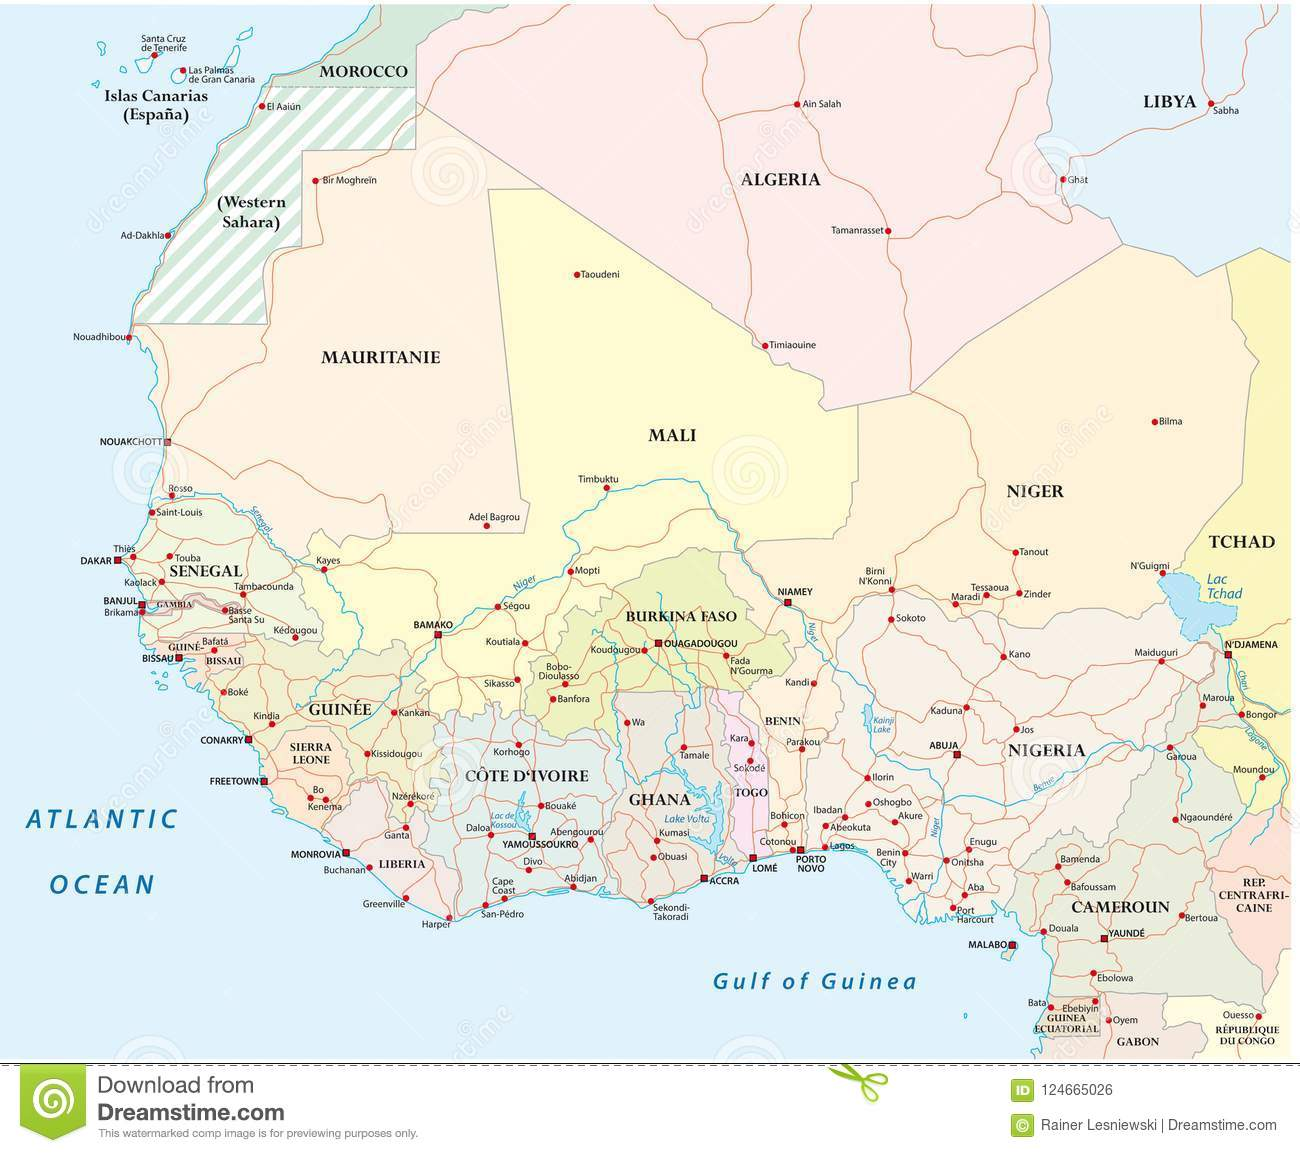 Countries Of West Africa Map.Detailed Road Map Of The Countries Of West Africa With